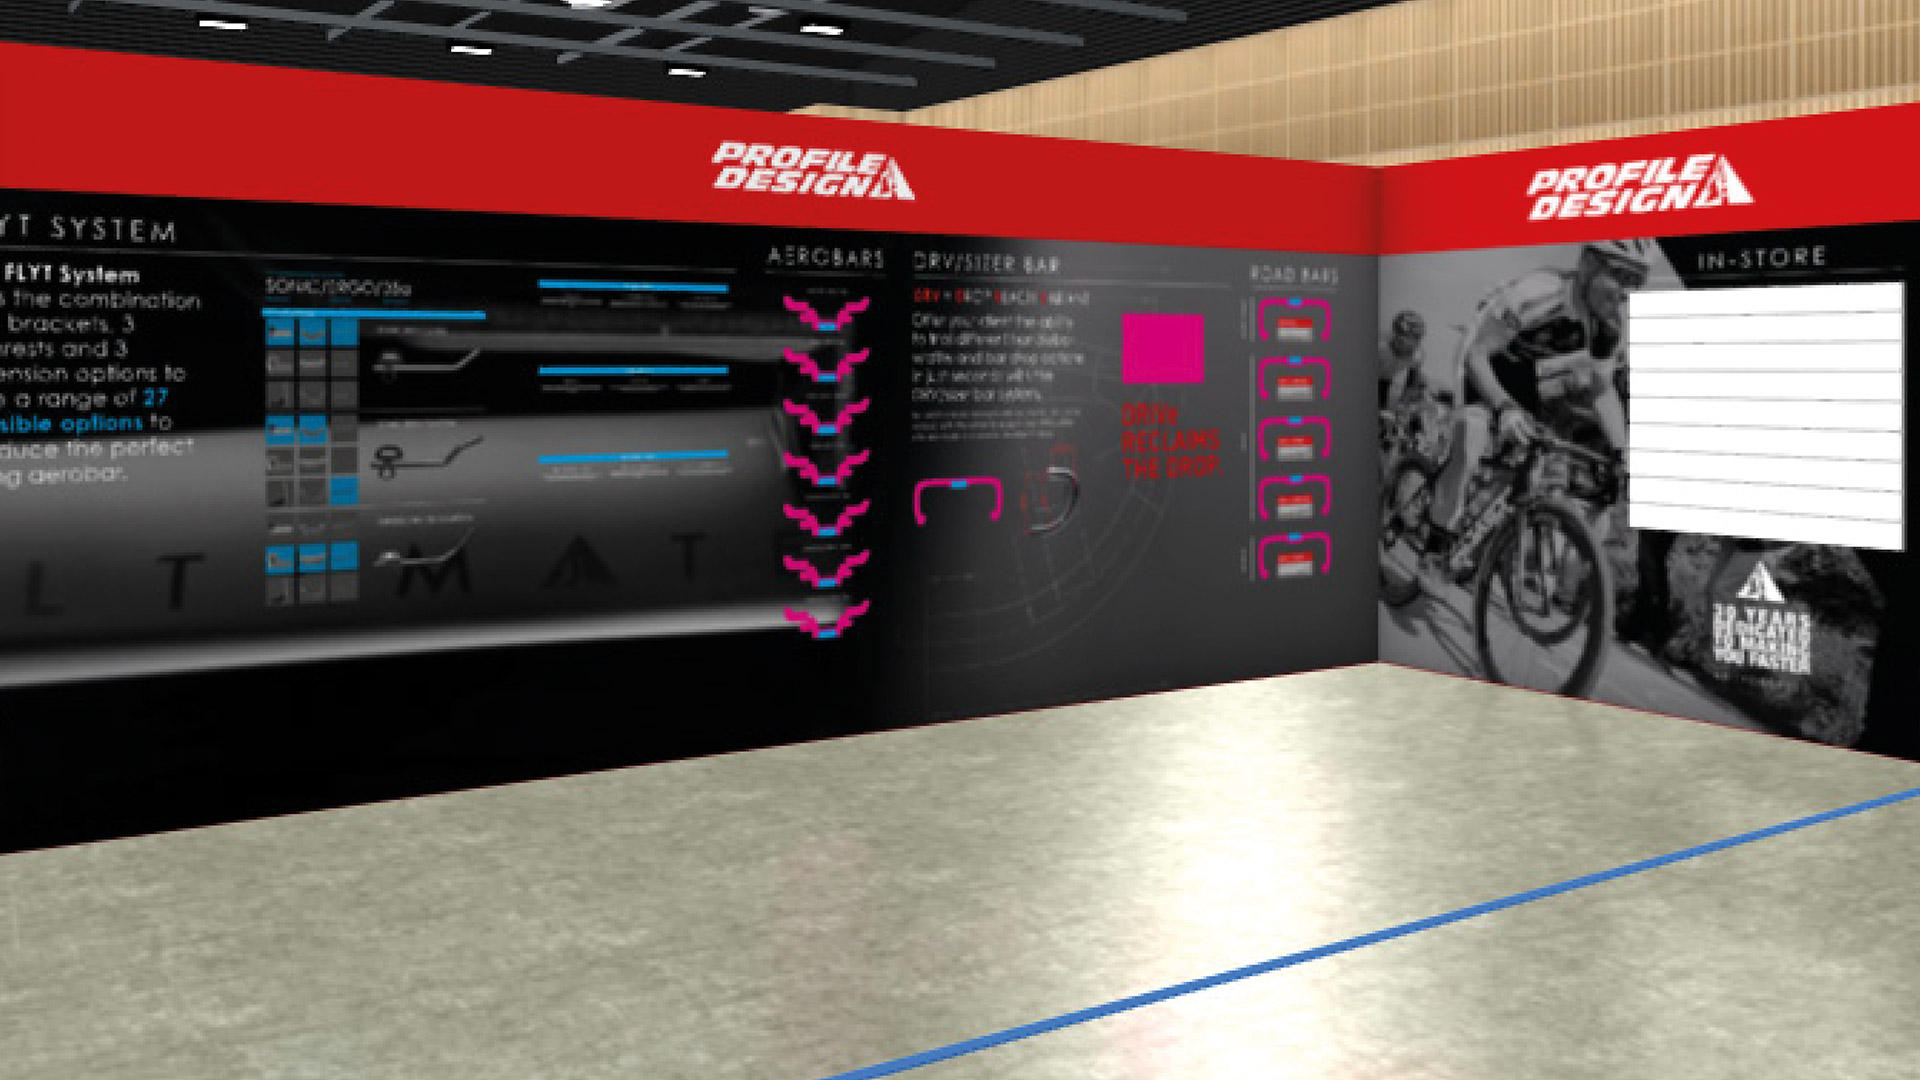 IceBike UK - Profile design Stand render